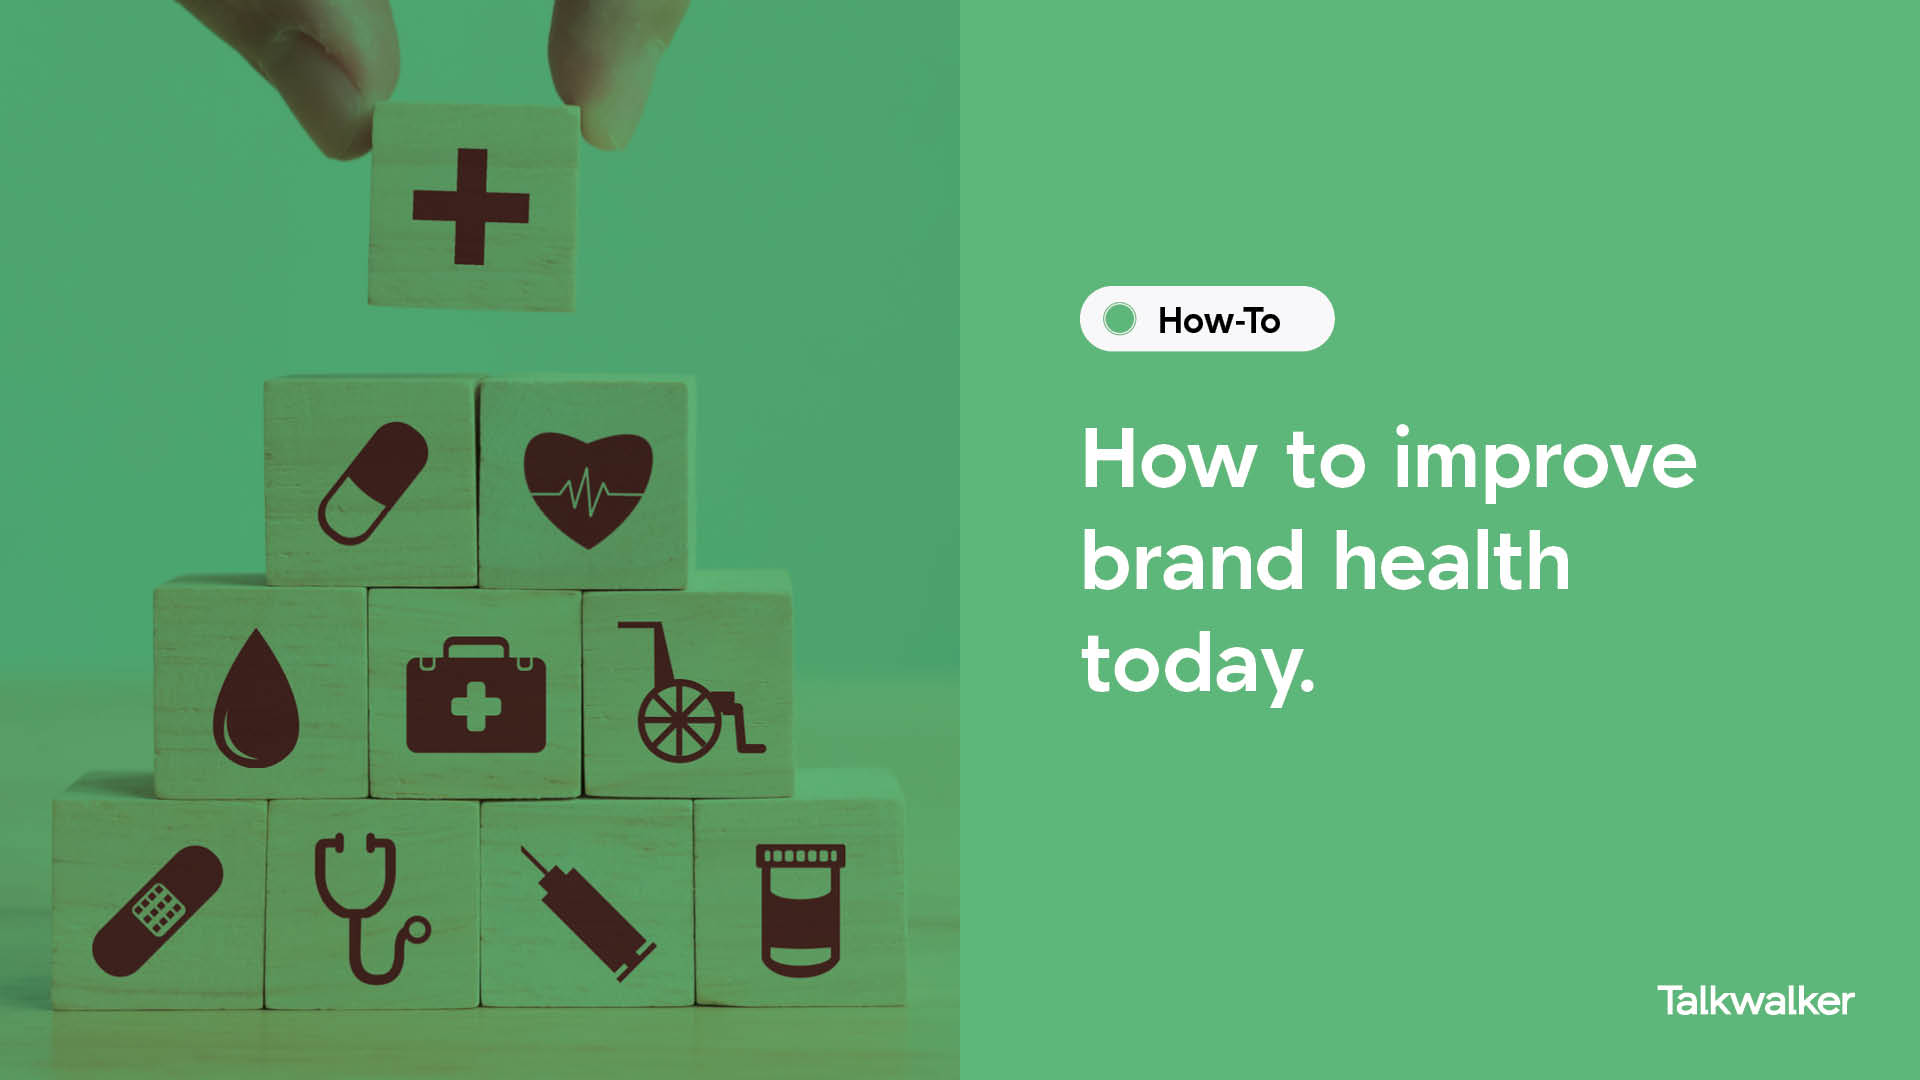 How to improve brand health today